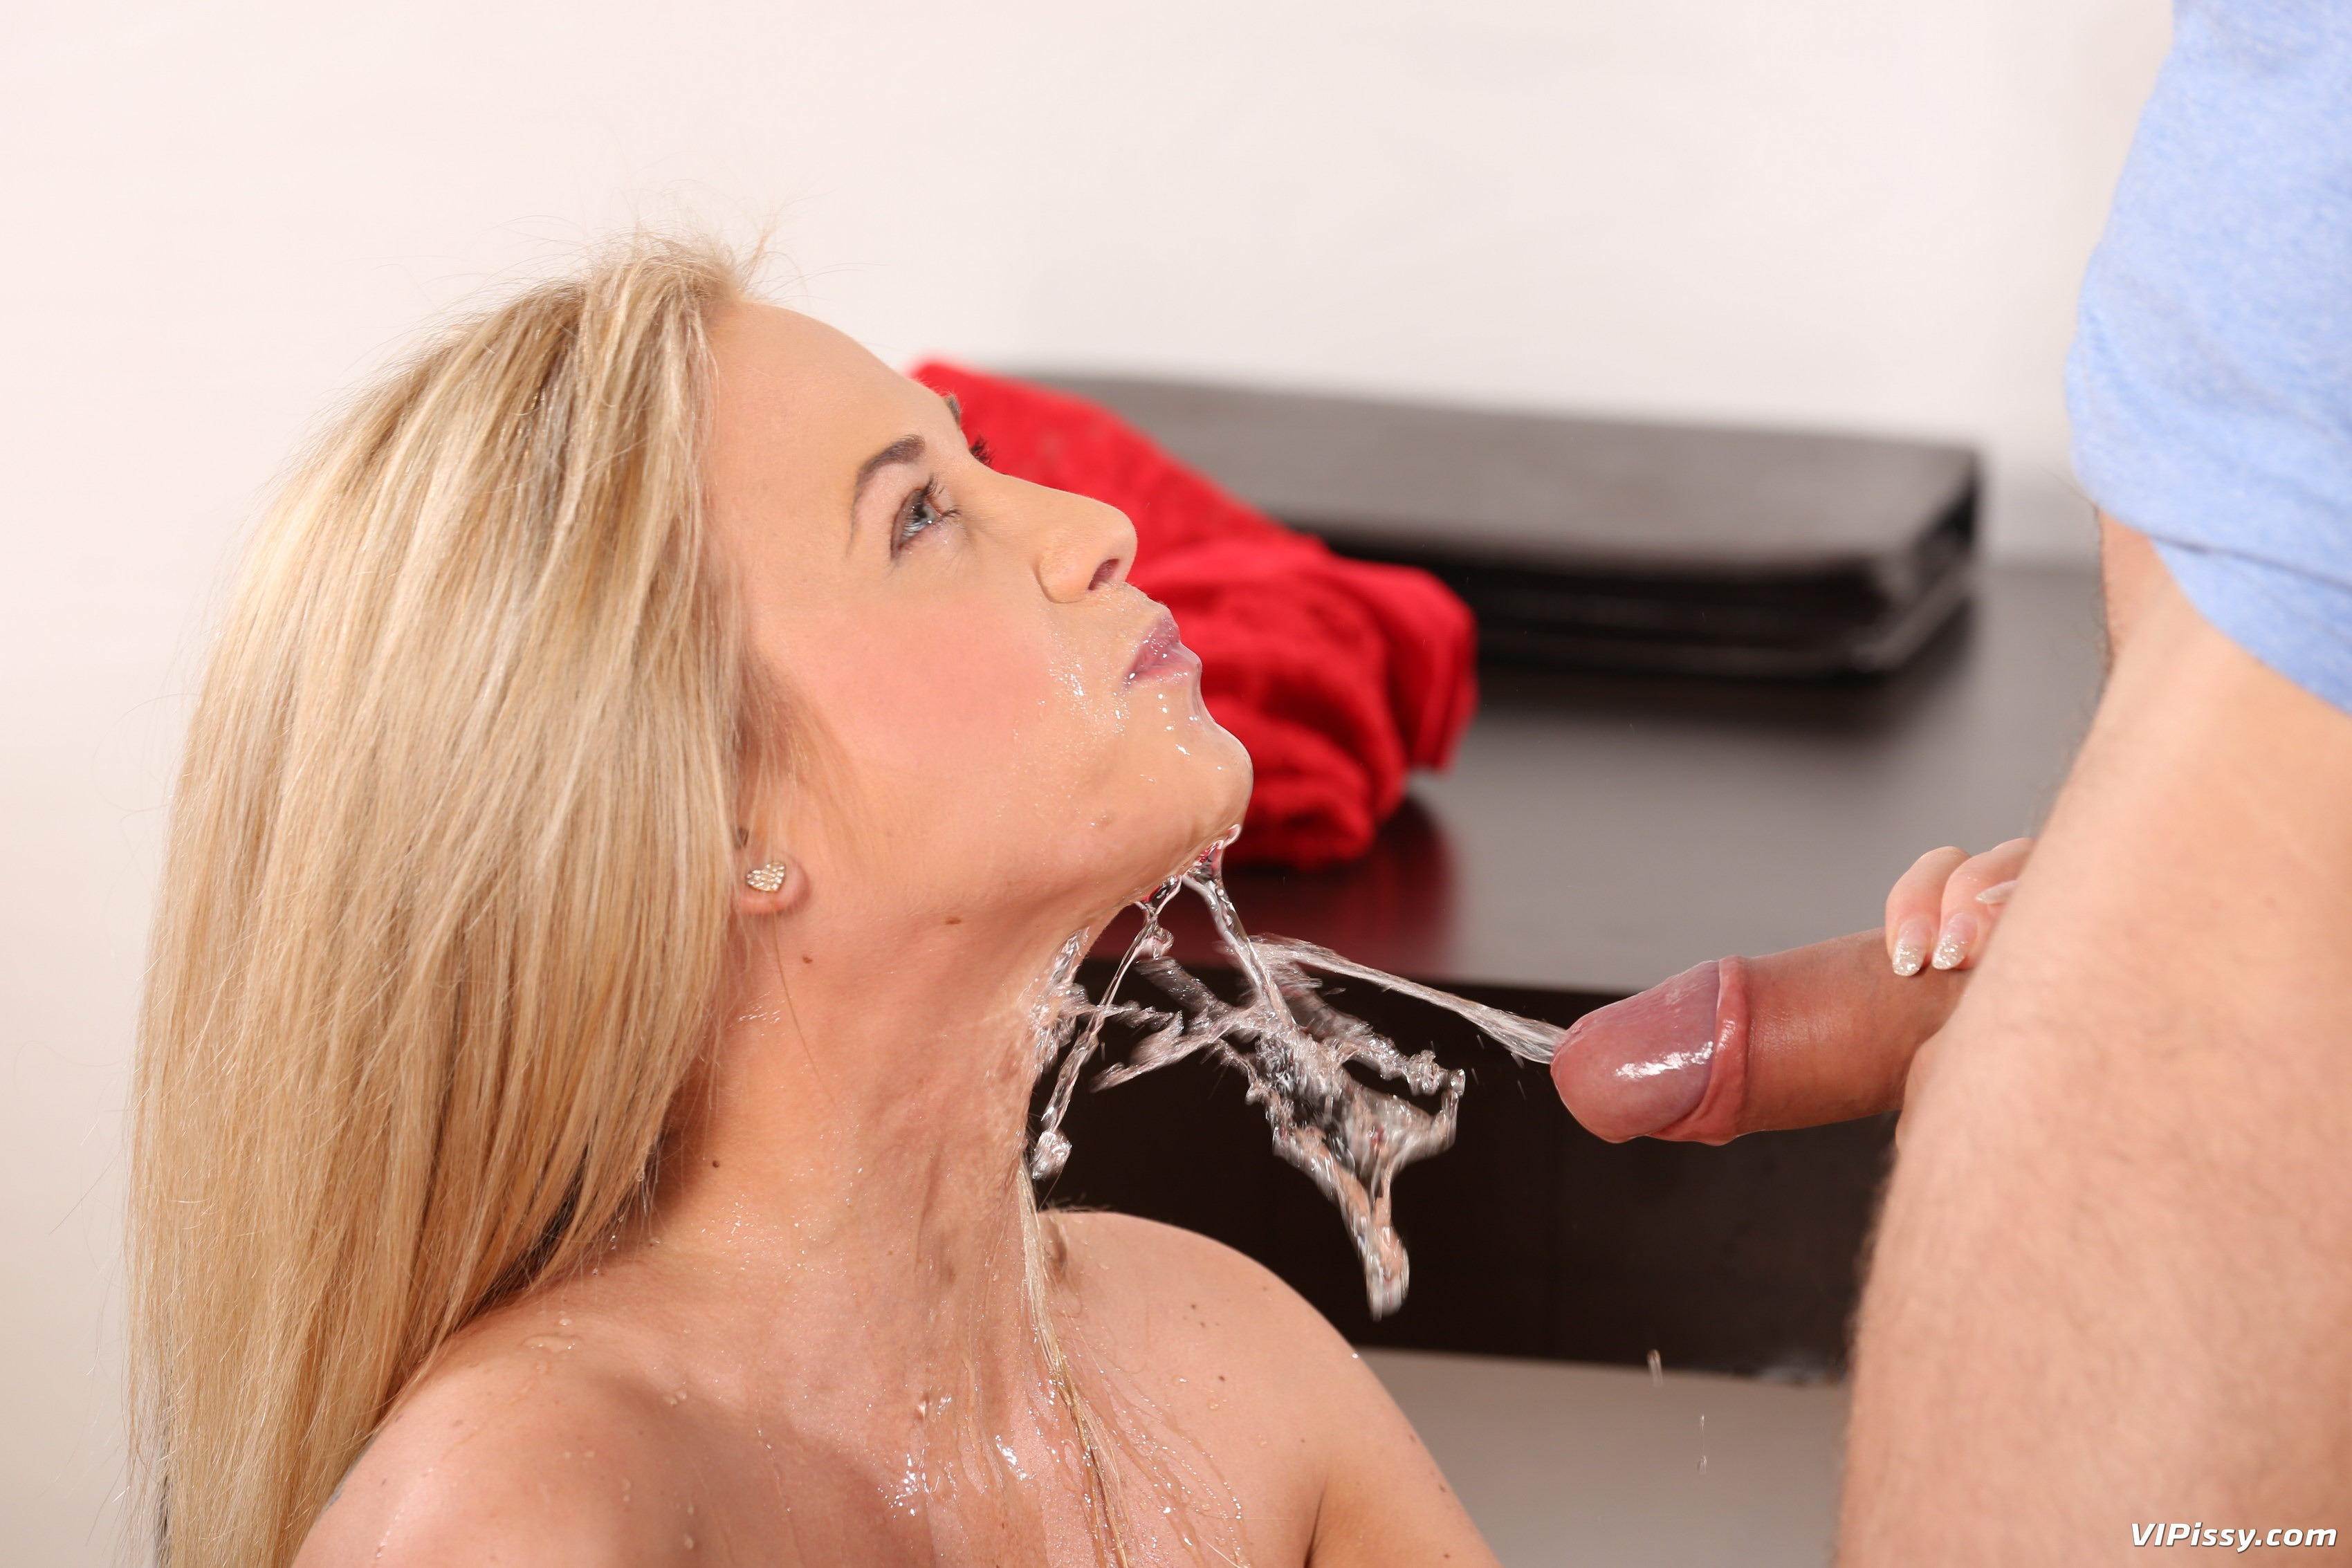 Piss drinking lady dee gulps down pee after vibrator play 6